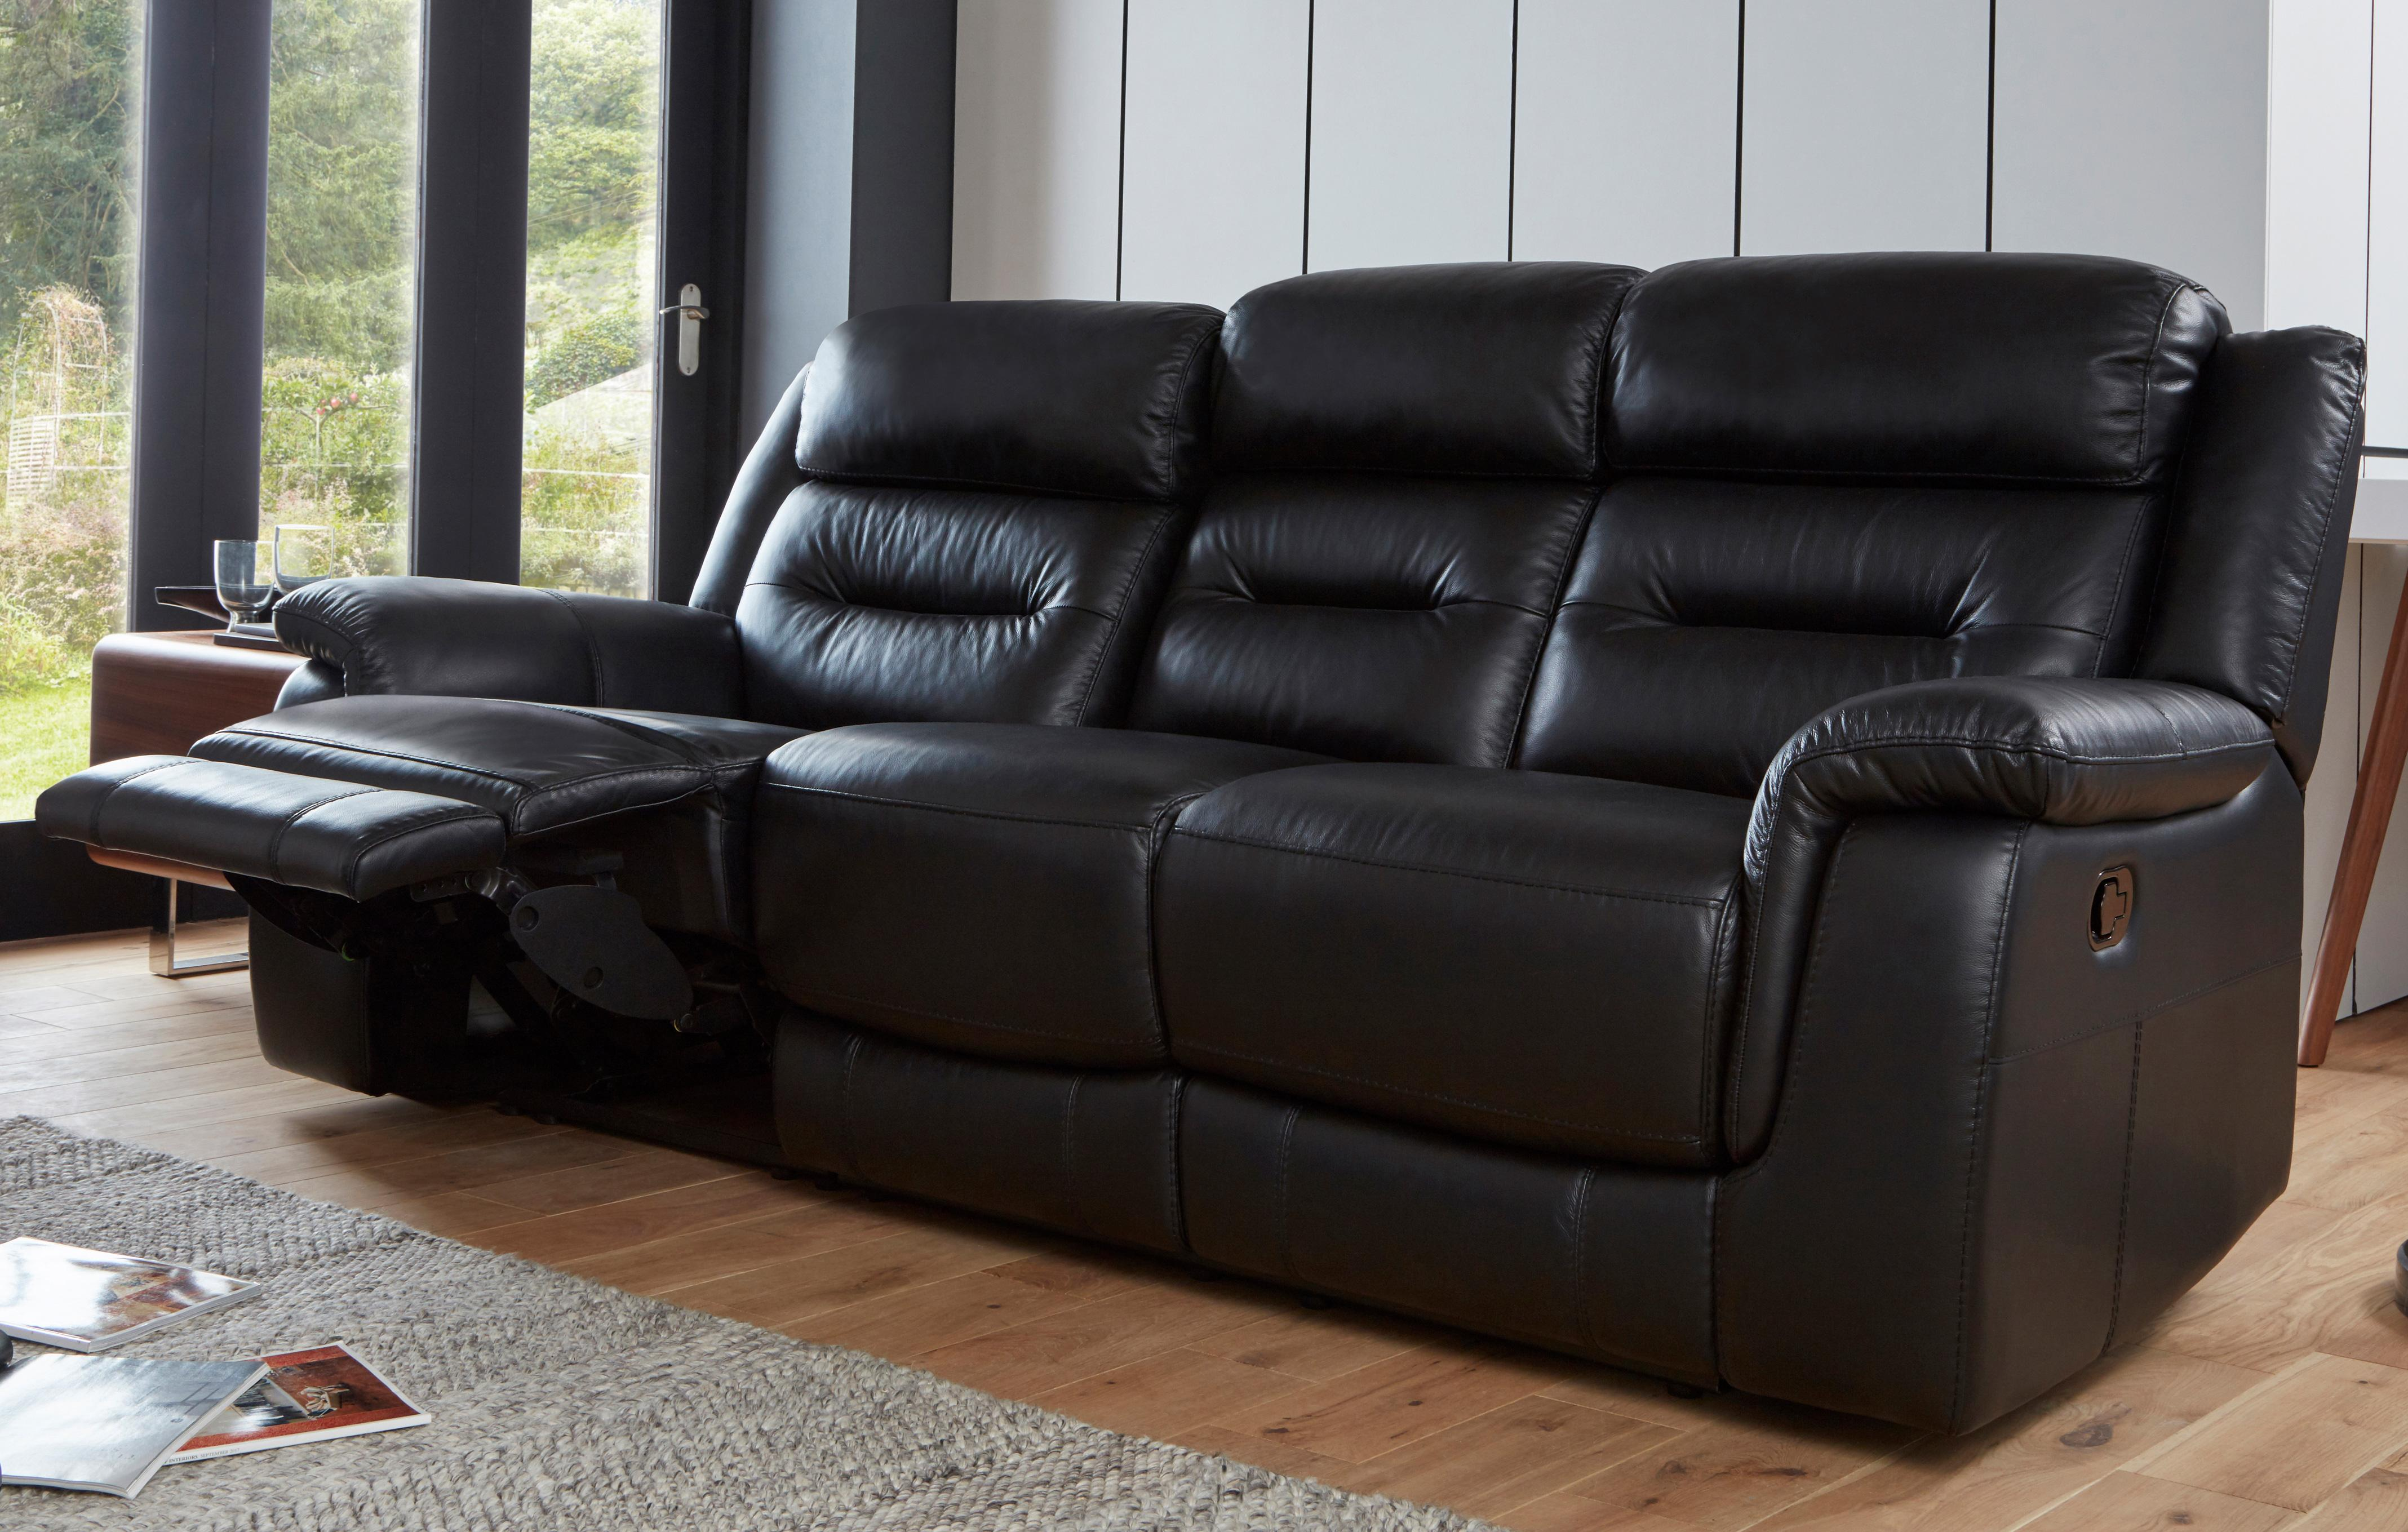 dfs sofas sleeper sofa black friday deals all leather spain tinsley 3 seater manual recliner premium